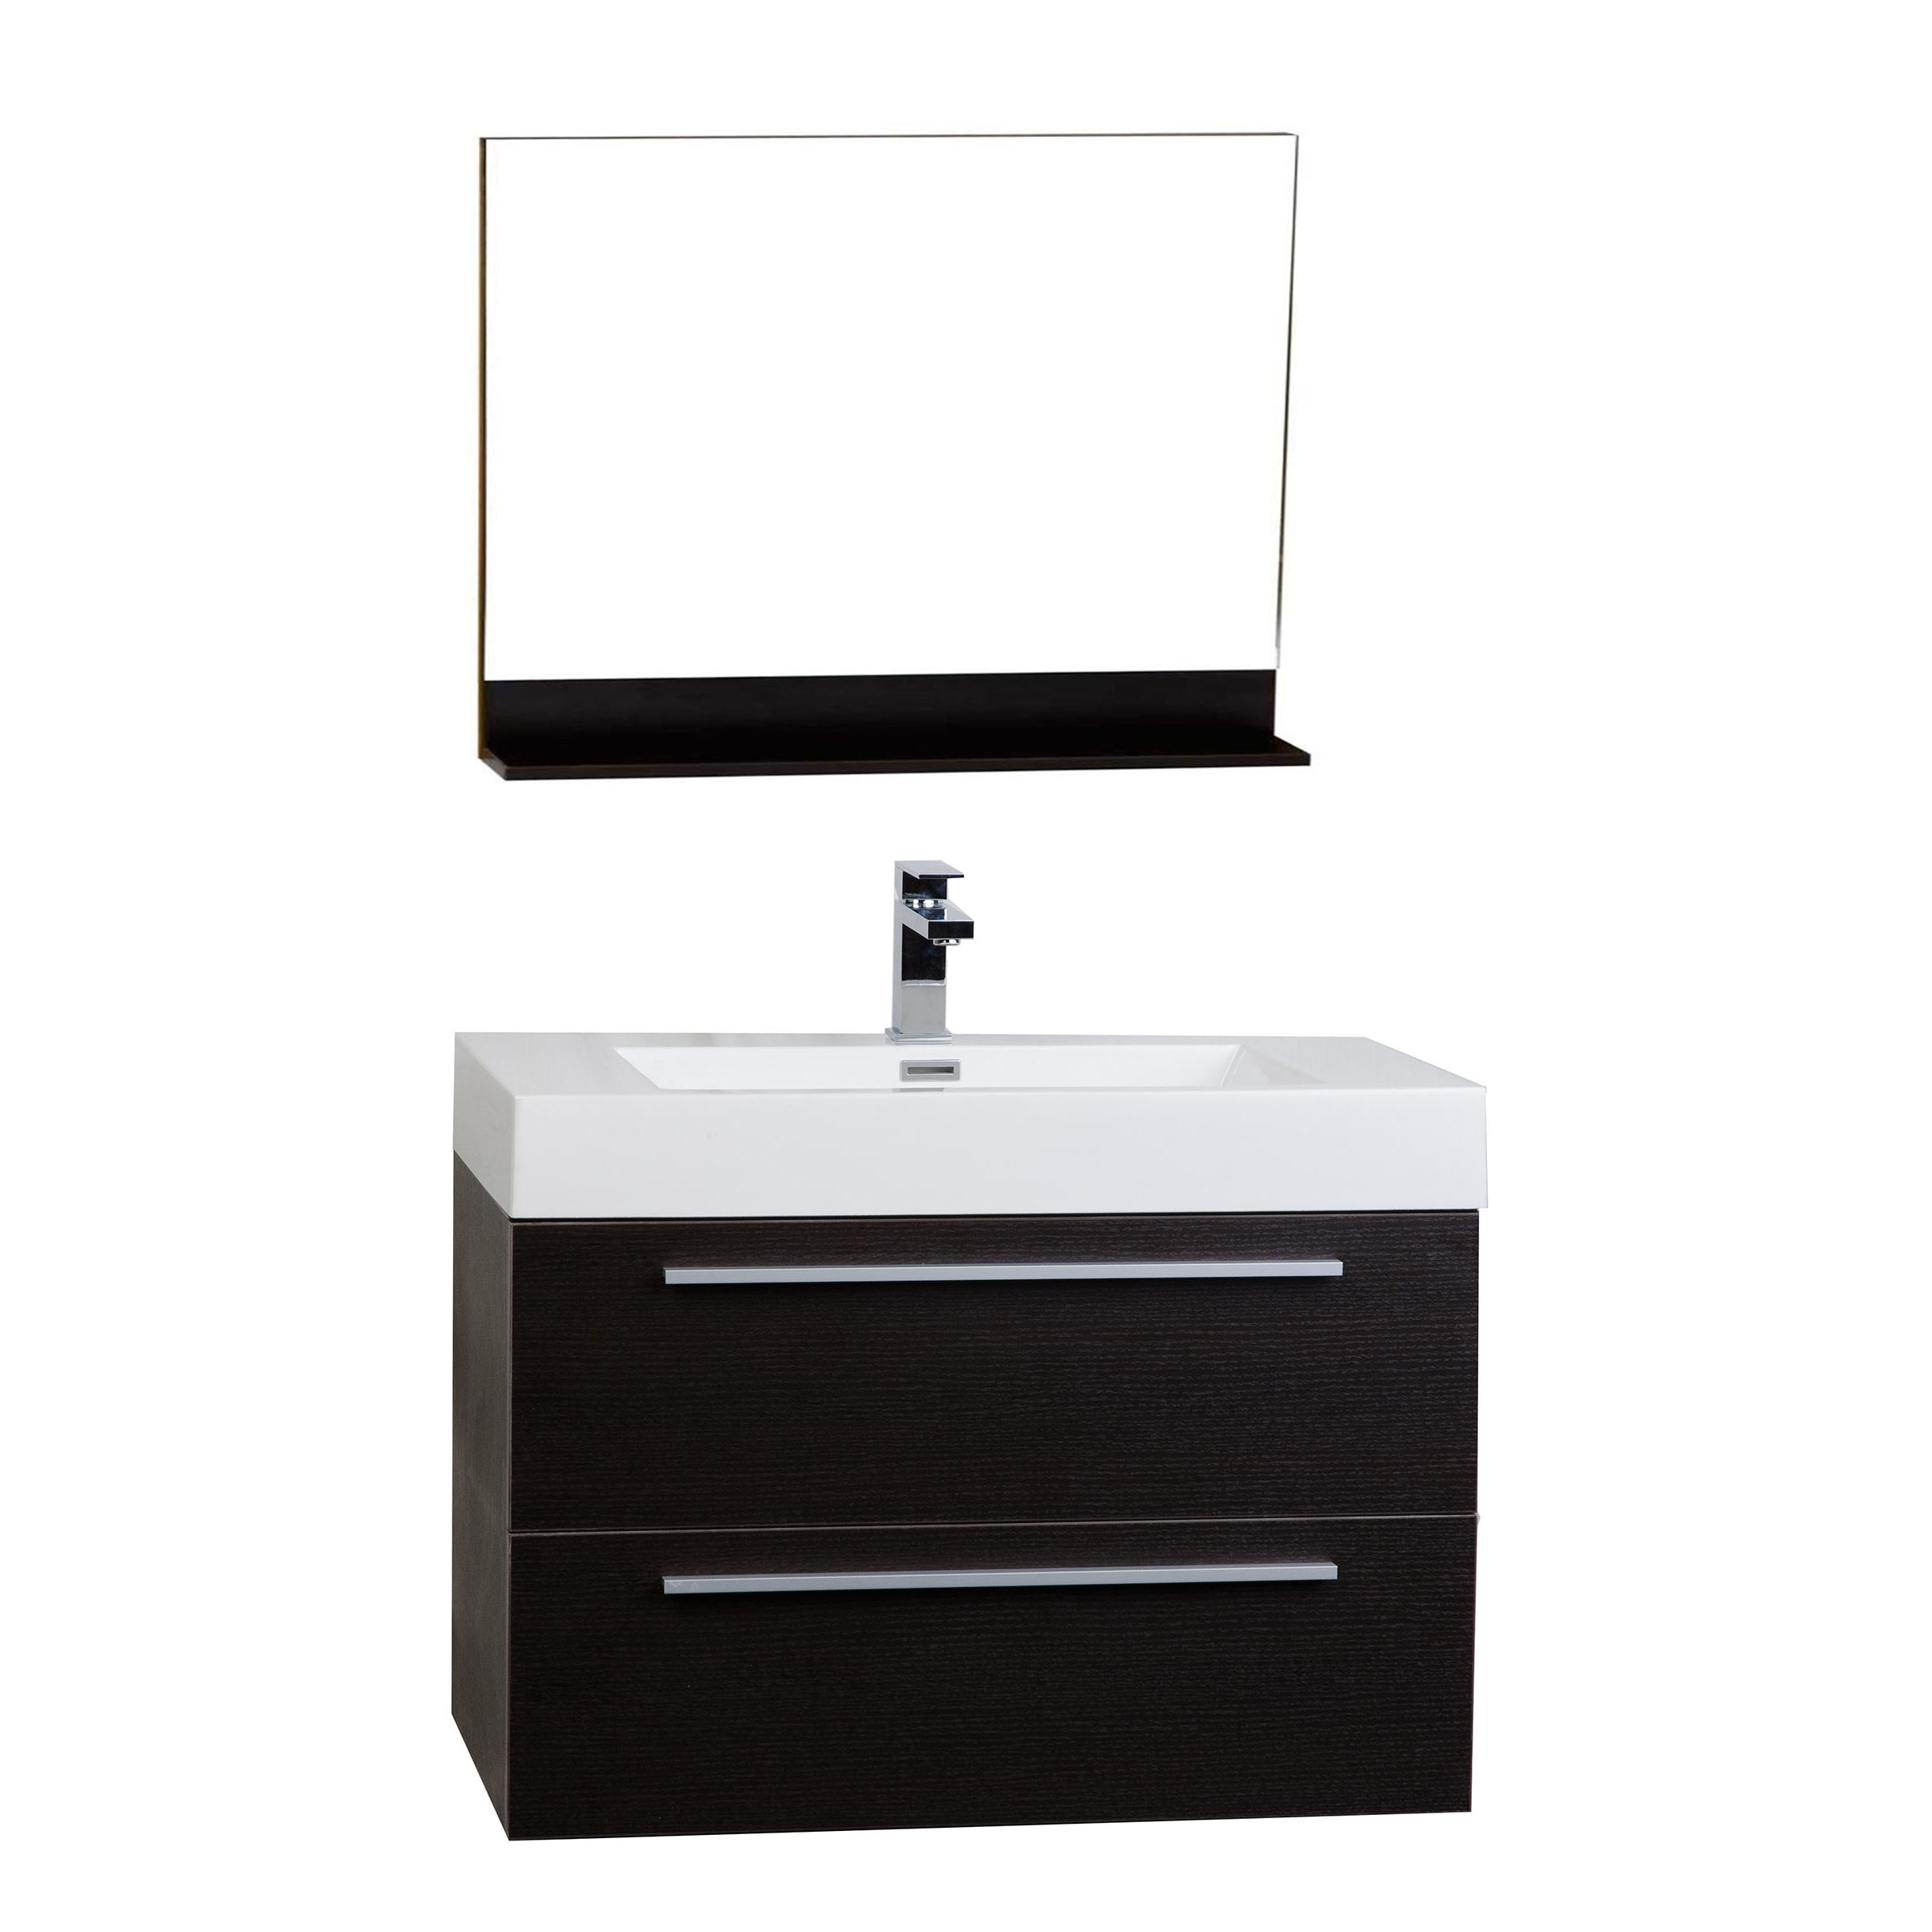 a offers brand bathroom post largo mount set double to aquatrend of mounted beautiful teak inch ideas related wall lovely vanity cabinet range the fresca furniture quality